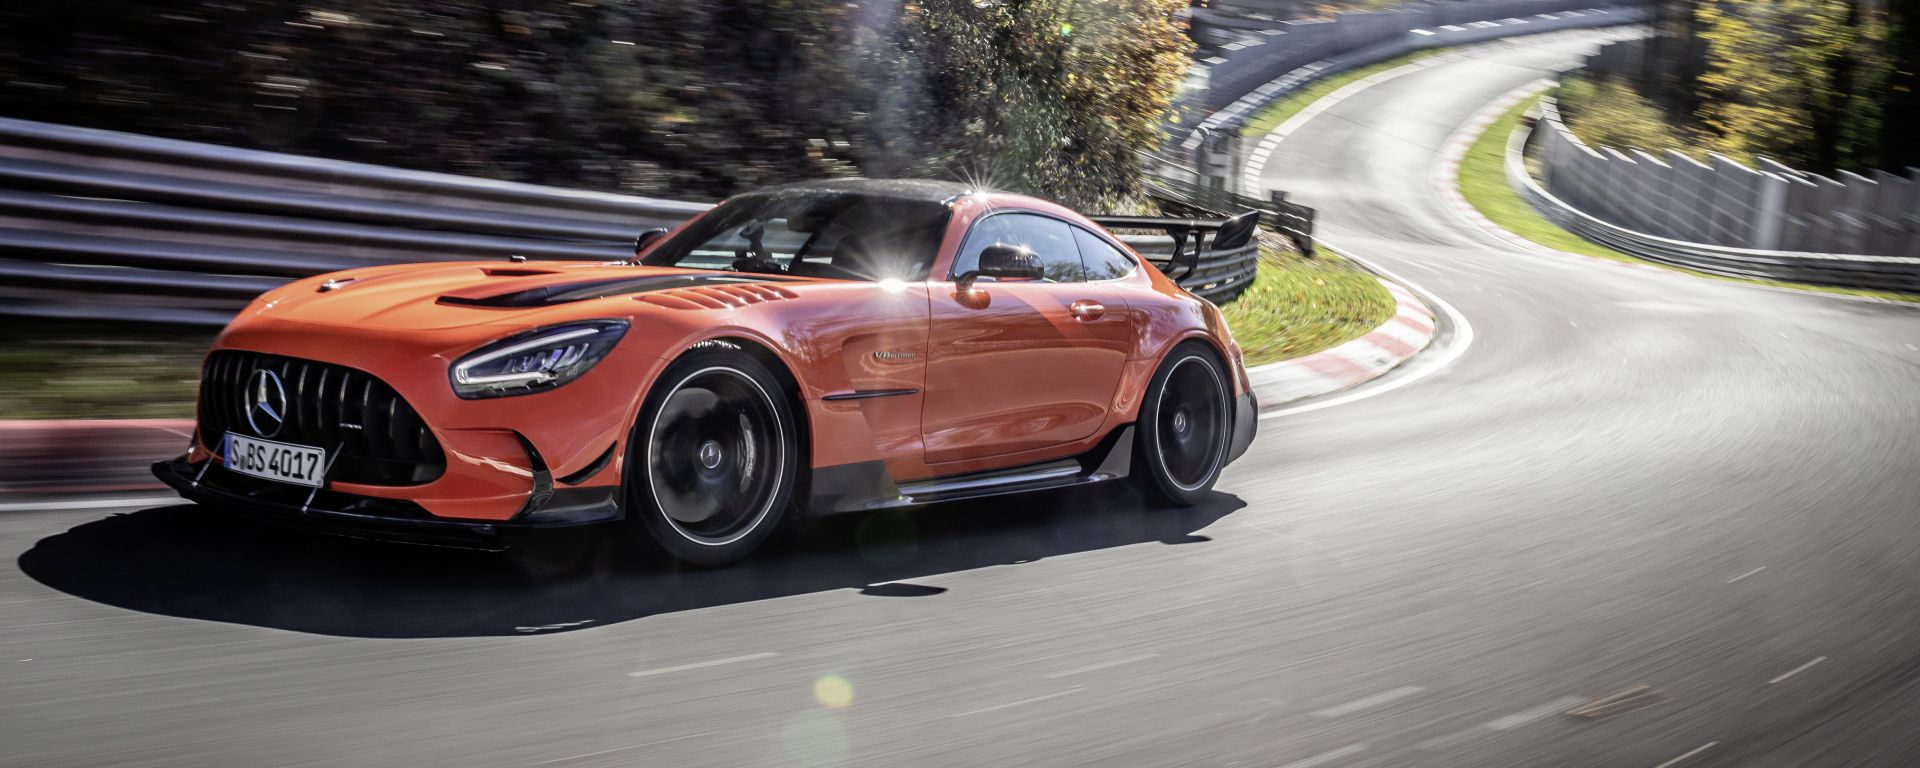 Mercedes-AMG GT Black Series: 3/4 anteriore